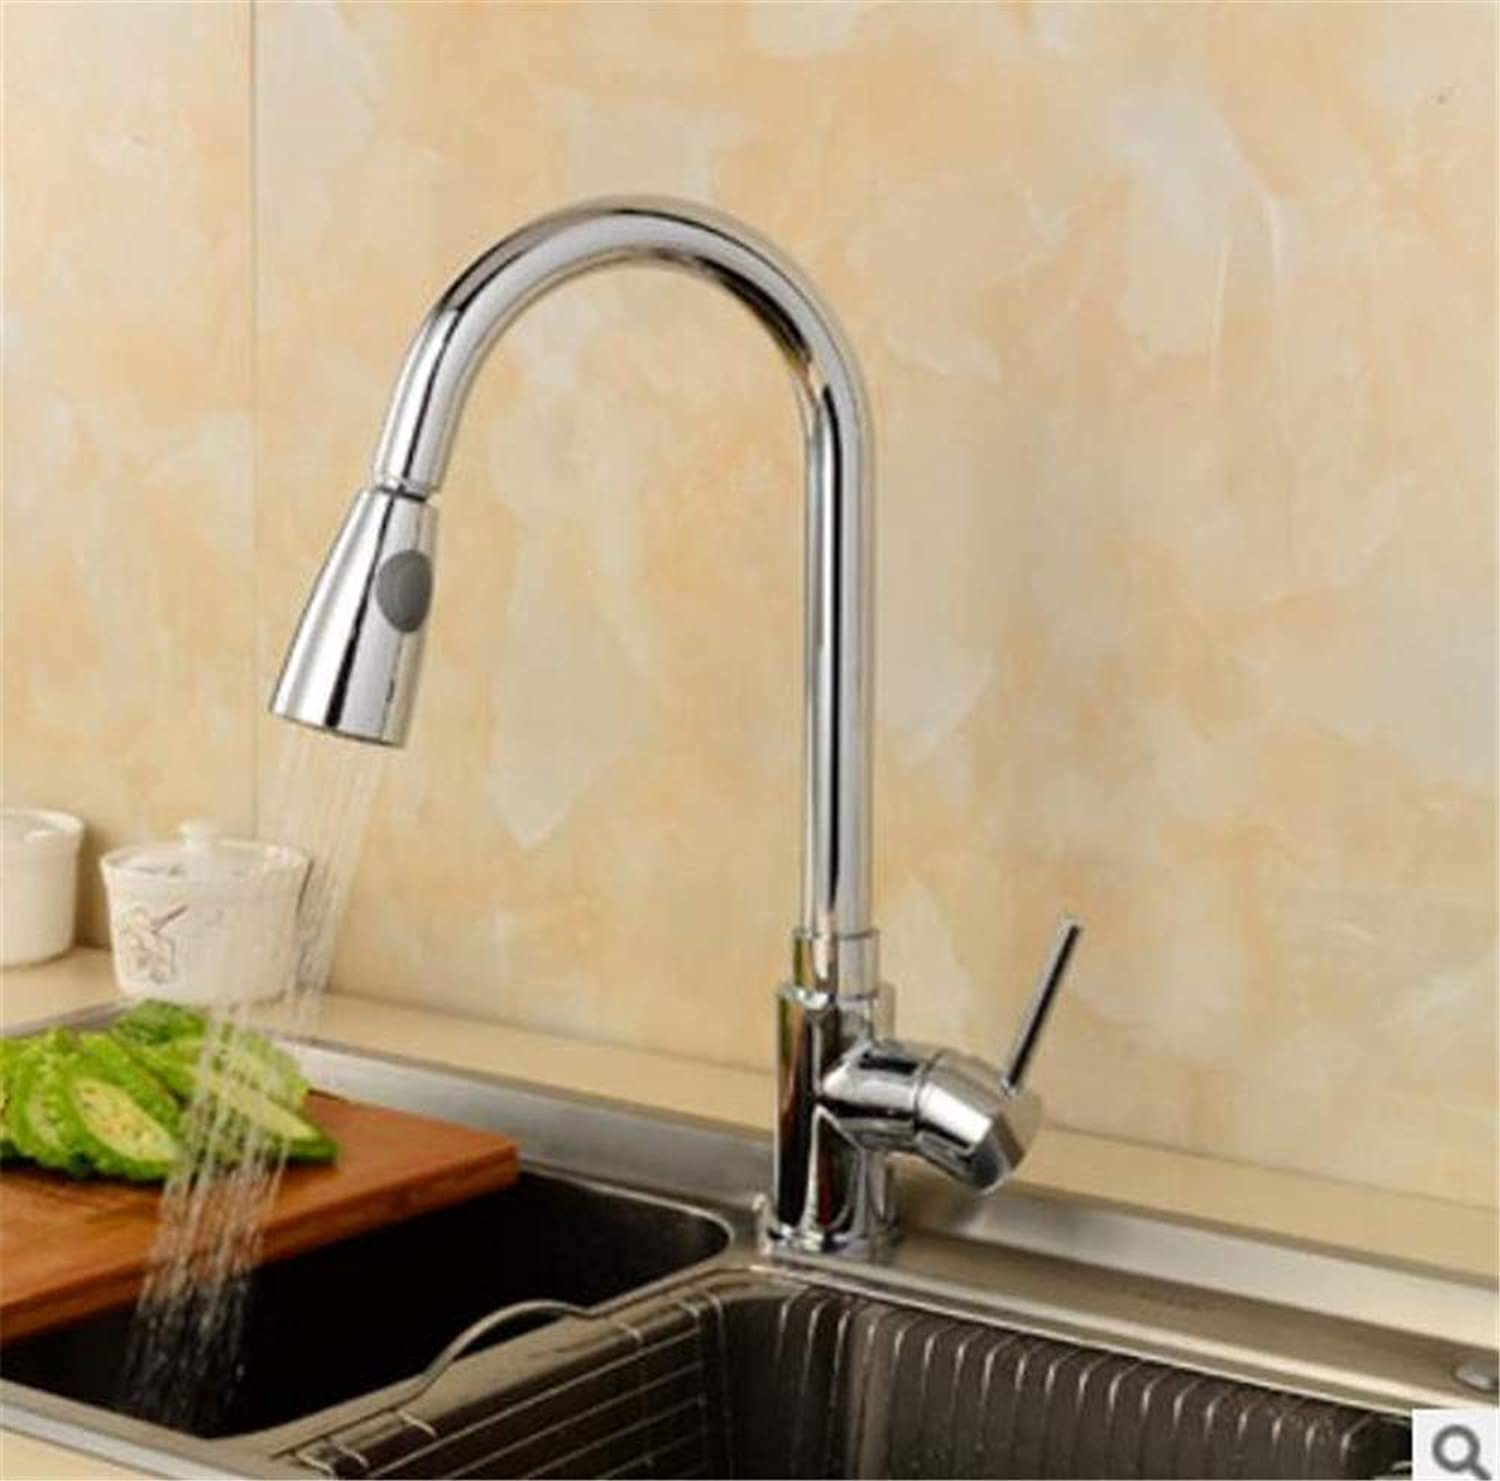 Oudan All Copper Cold Jet Black Antique Brushed Nickel Orb Pull Hot and Cold Water Mixing Water Dish Kitchen Faucets (color   B, Size   -)